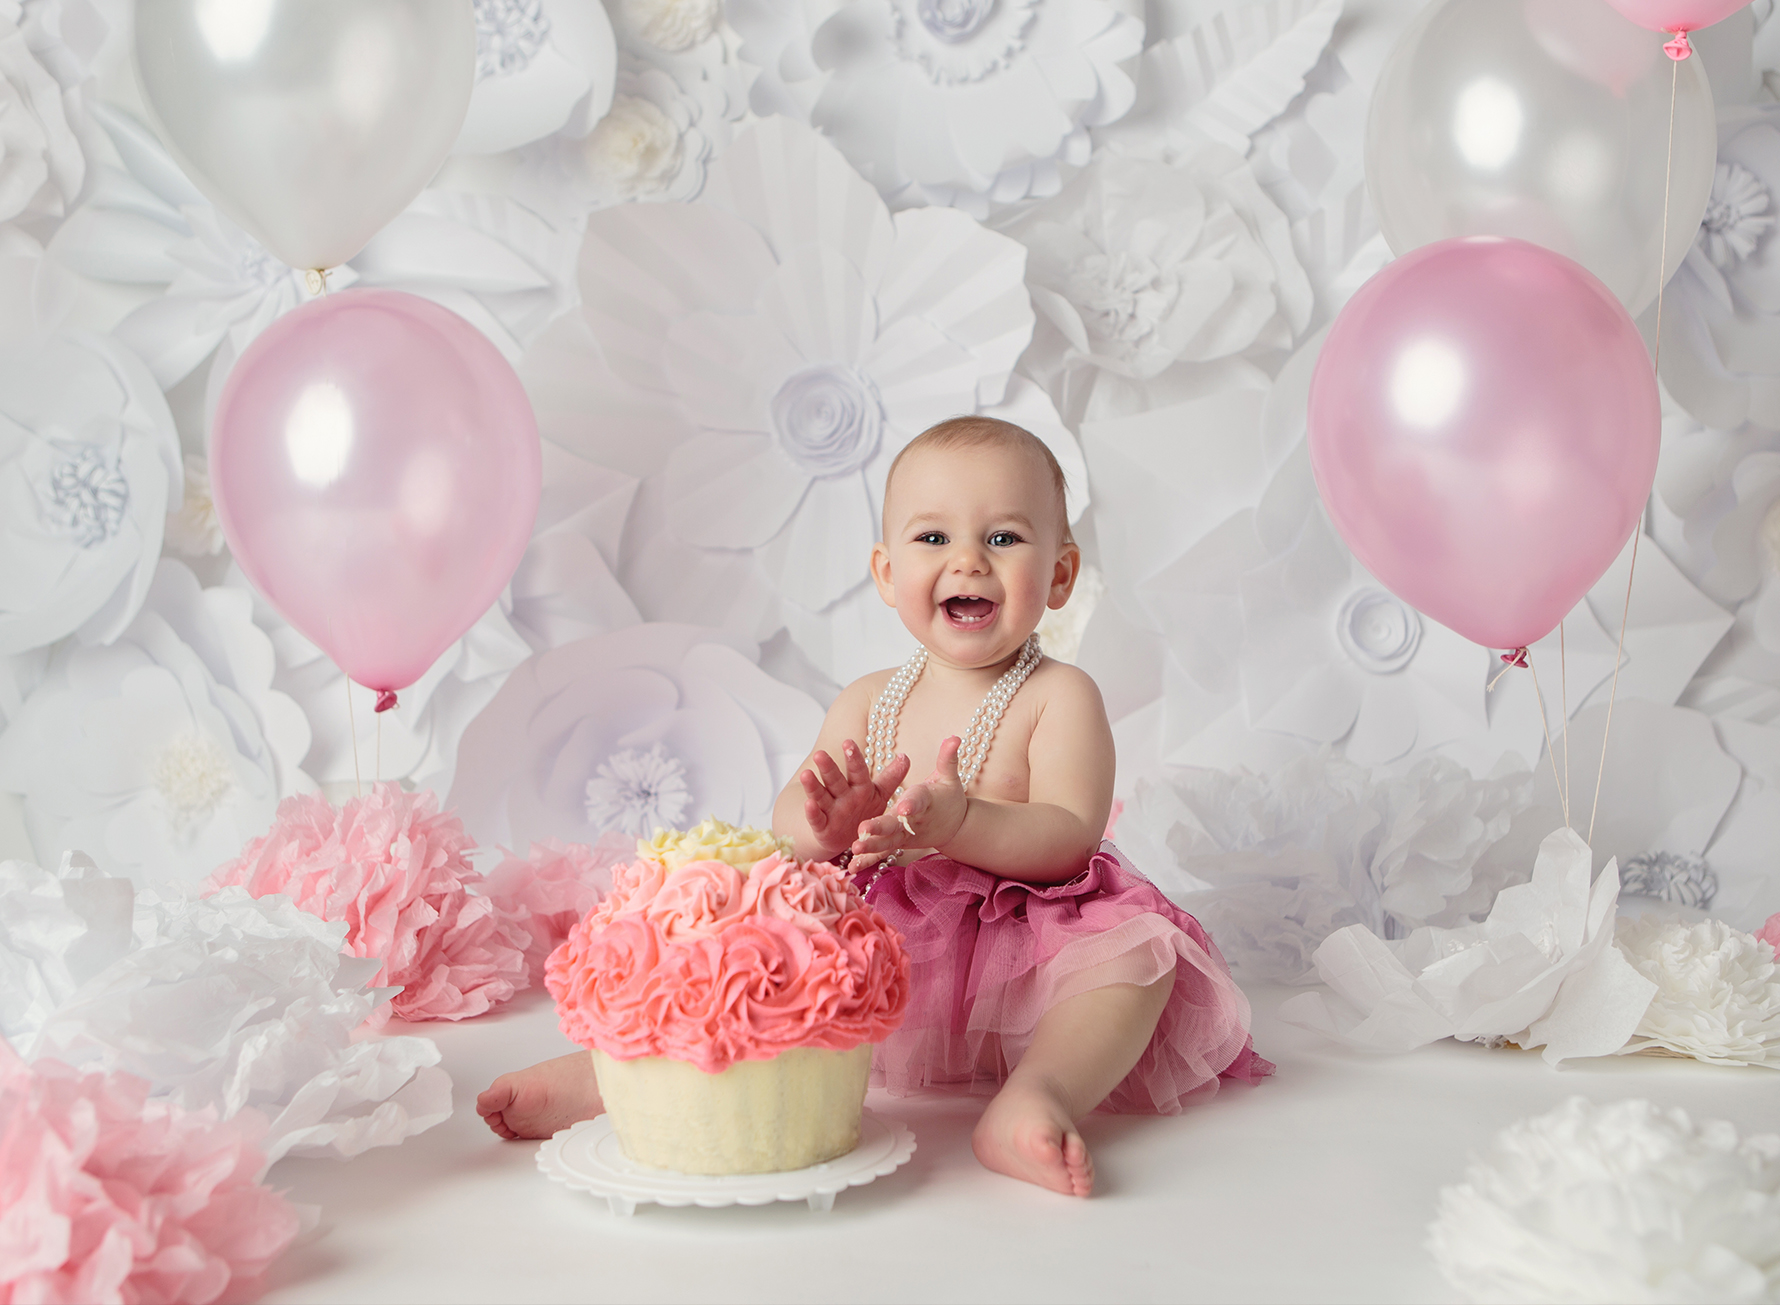 Cake Smash Session 2015 Edmonton Baby Photographer